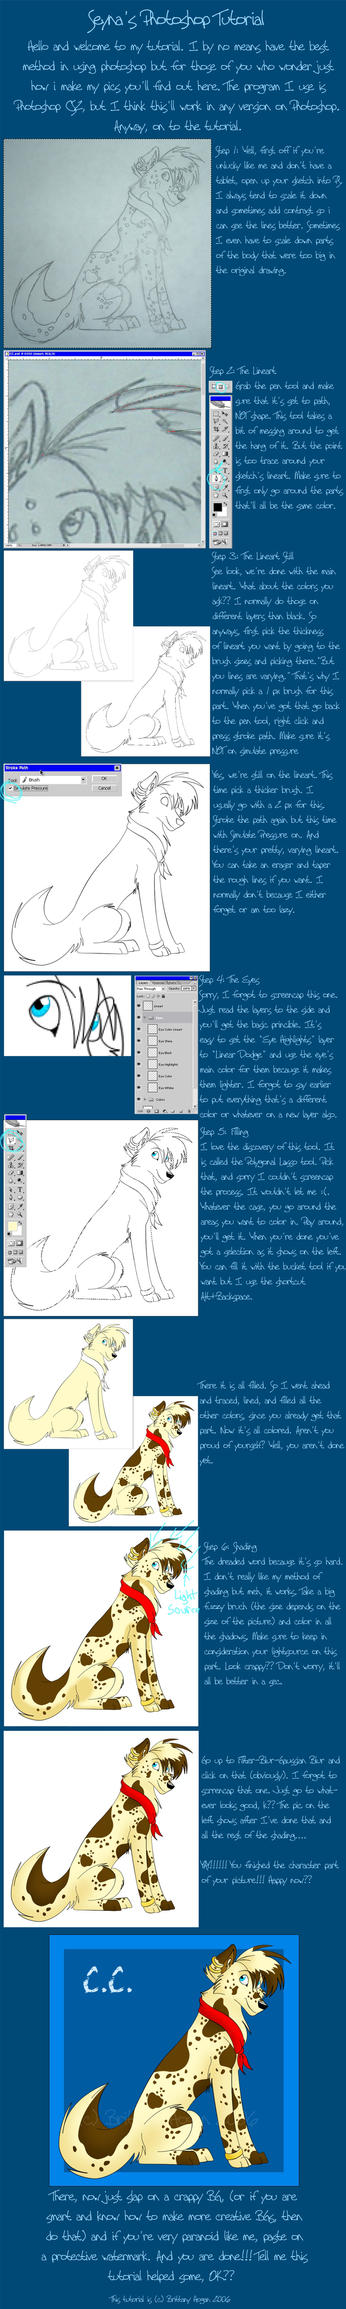 Seyna's Photoshop Tutorial by seynadarkwolf